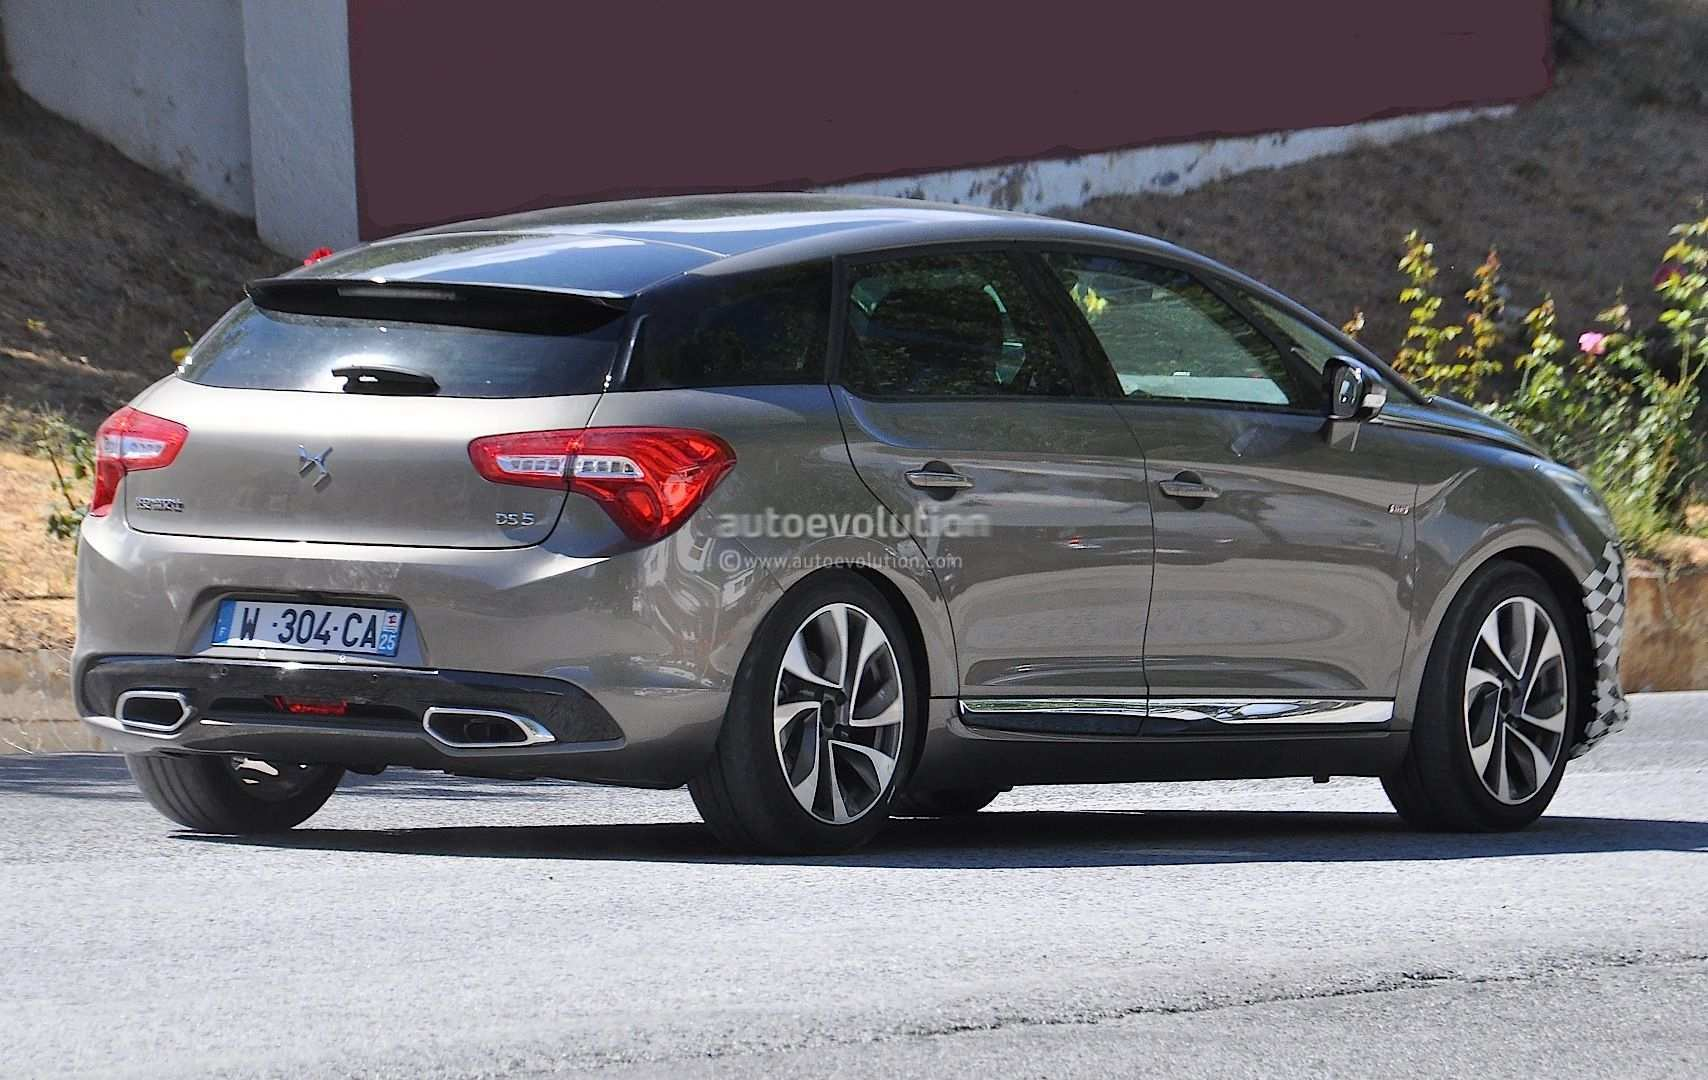 66 Great 2020 Citroen DS5 Redesign and Concept by 2020 Citroen DS5